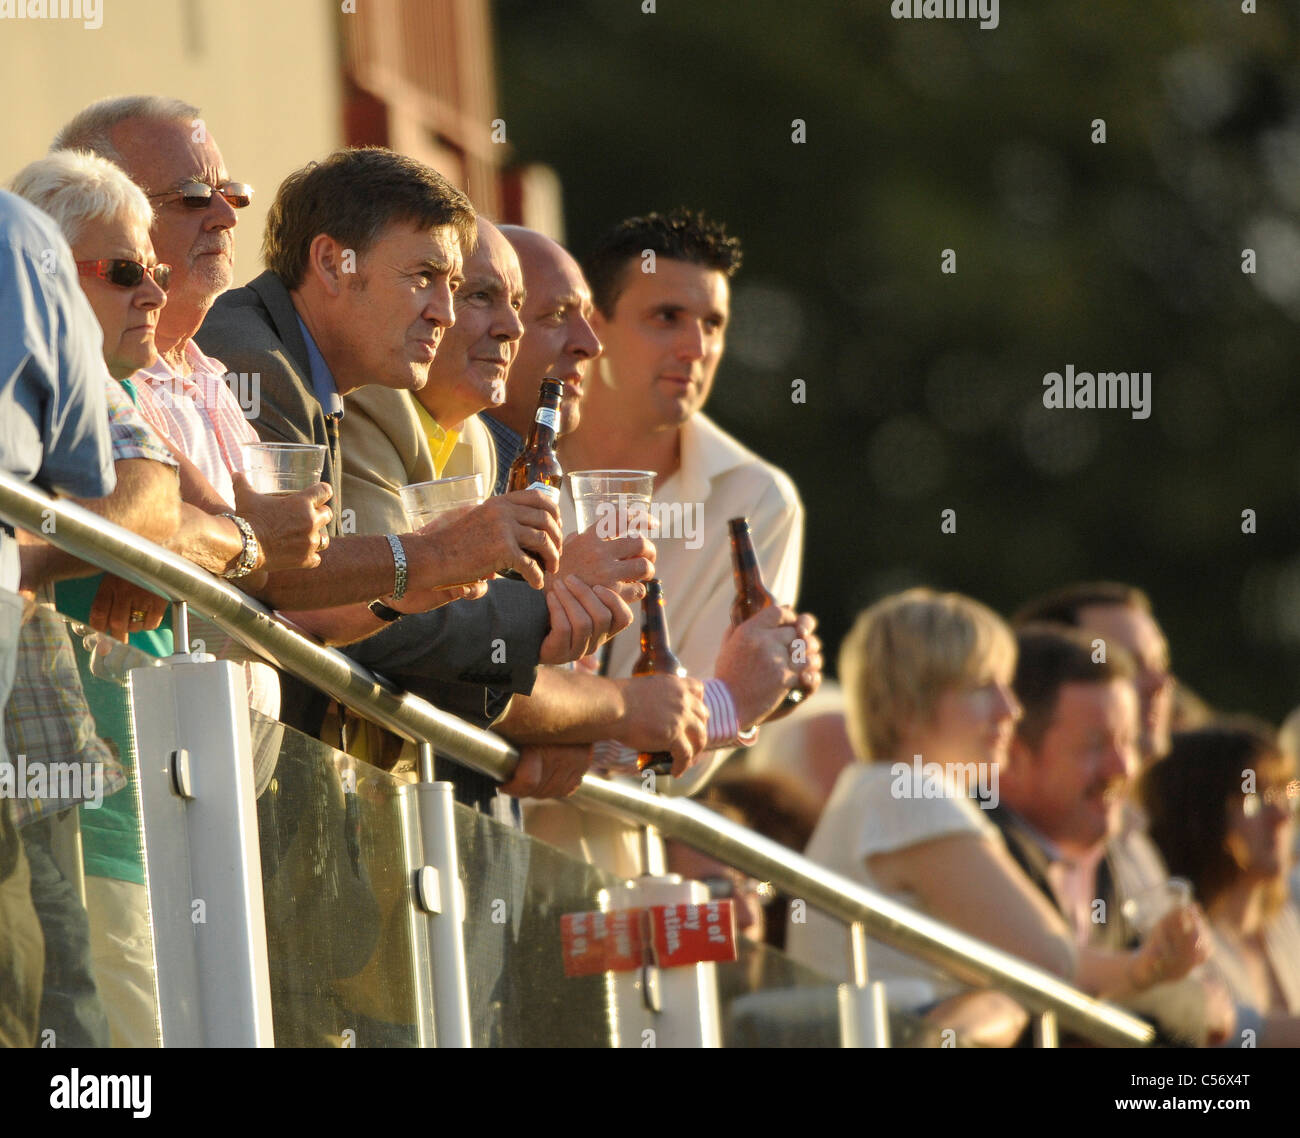 Crowd during their t20 South Divison game at the St Lawrence Ground, Canterbury, Kent, 8th July 2011 - Stock Image